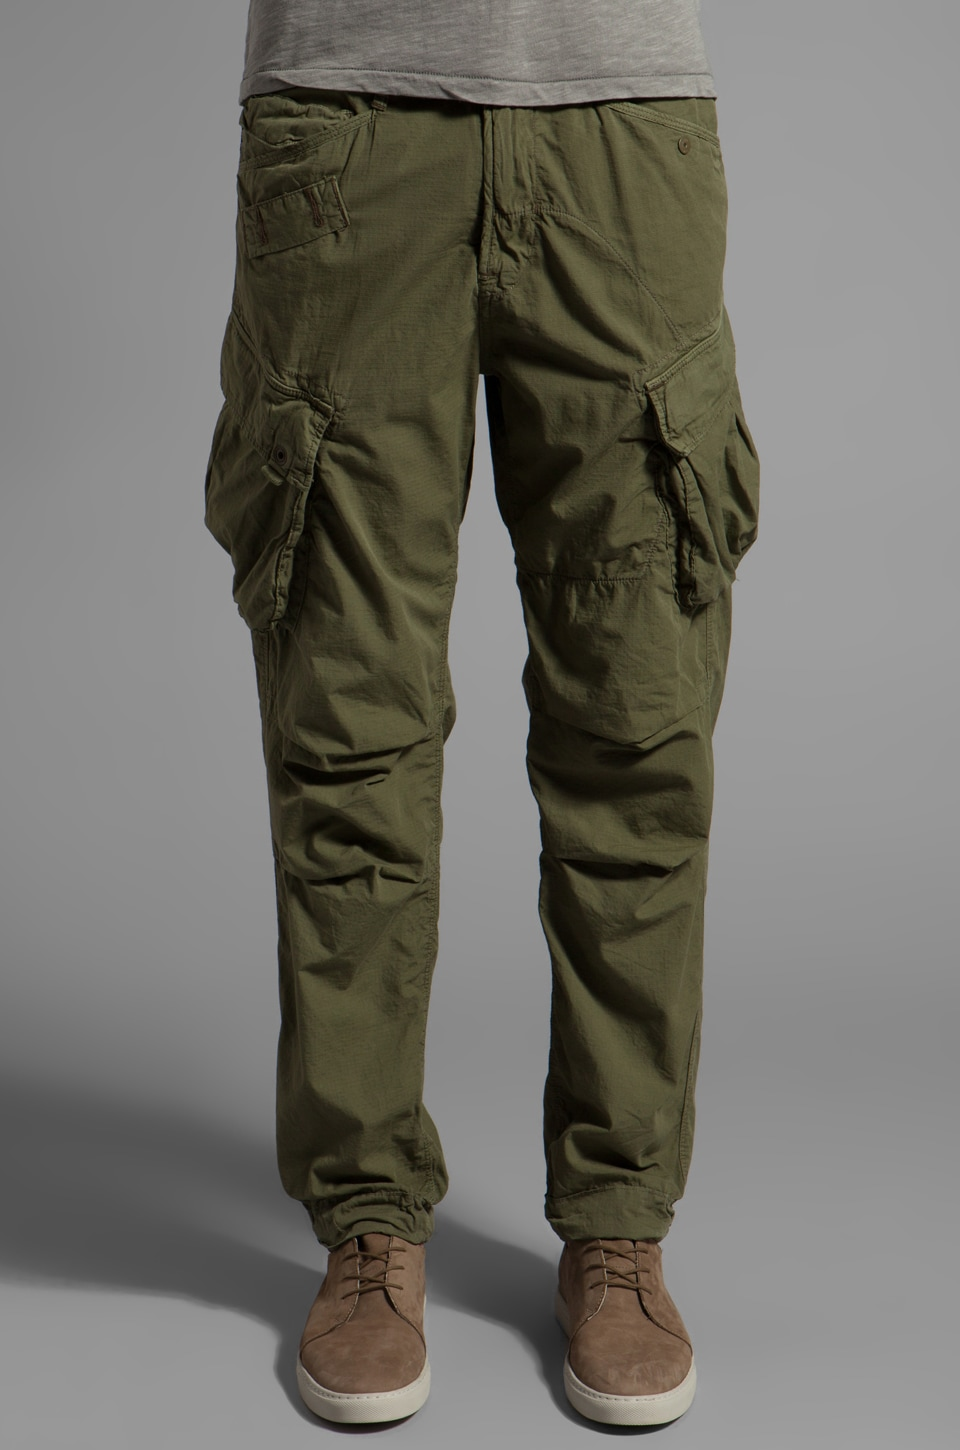 G-Star Rovic Tapered Pant in Sage